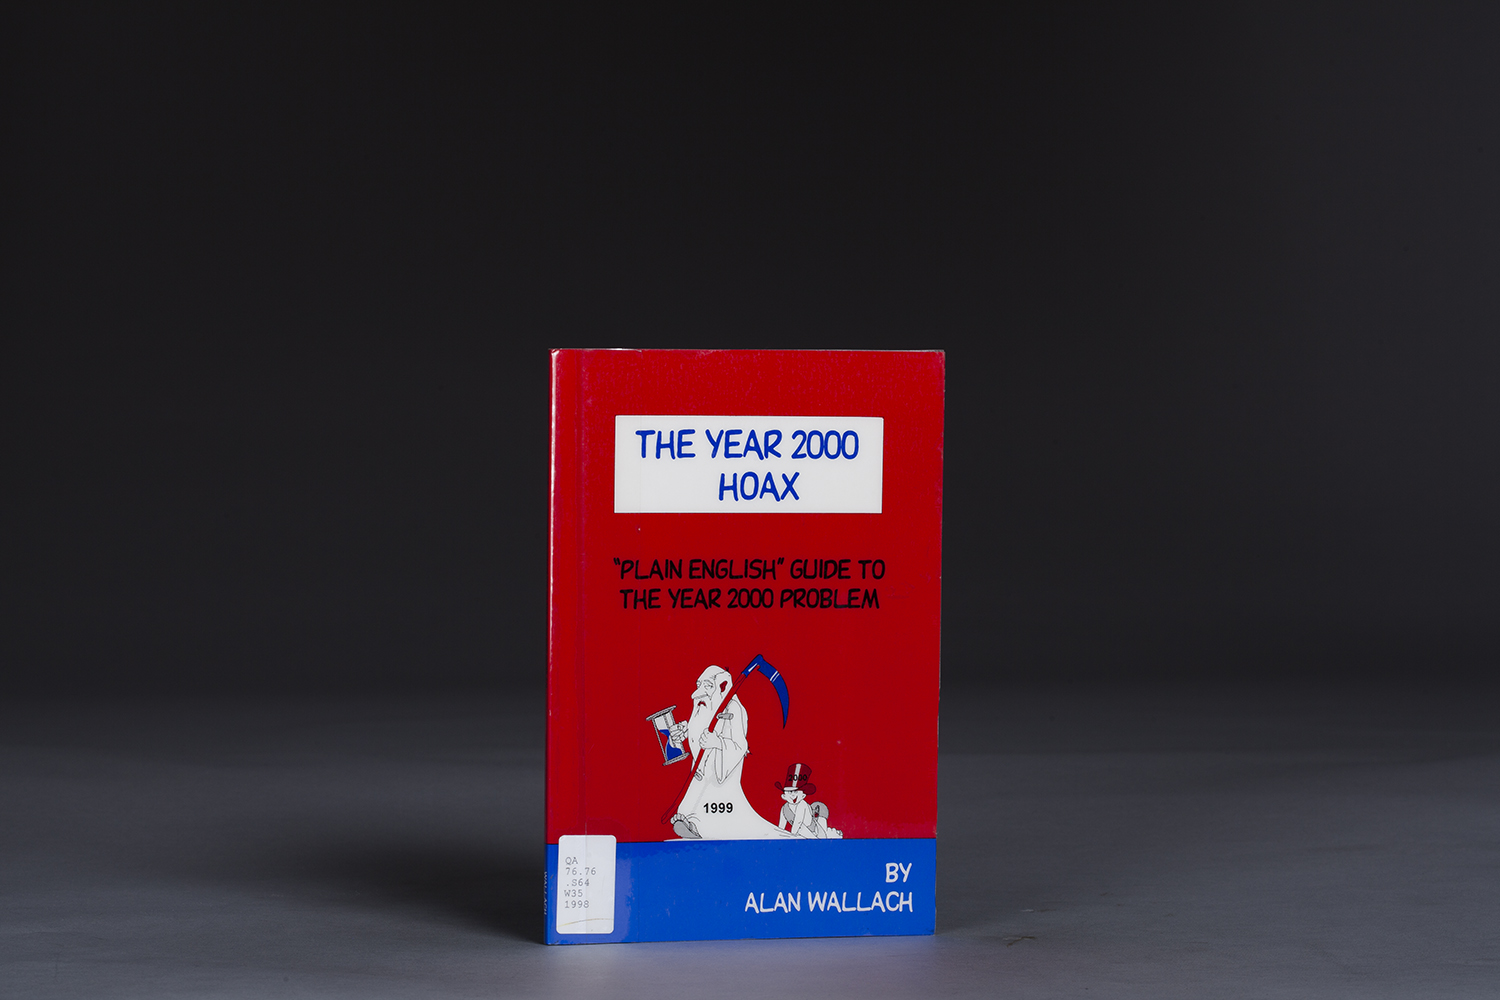 The Year 2000 Hoax - %22Plain English%22 Guide to the Year 2000 Problem - 1019 Cover.jpg